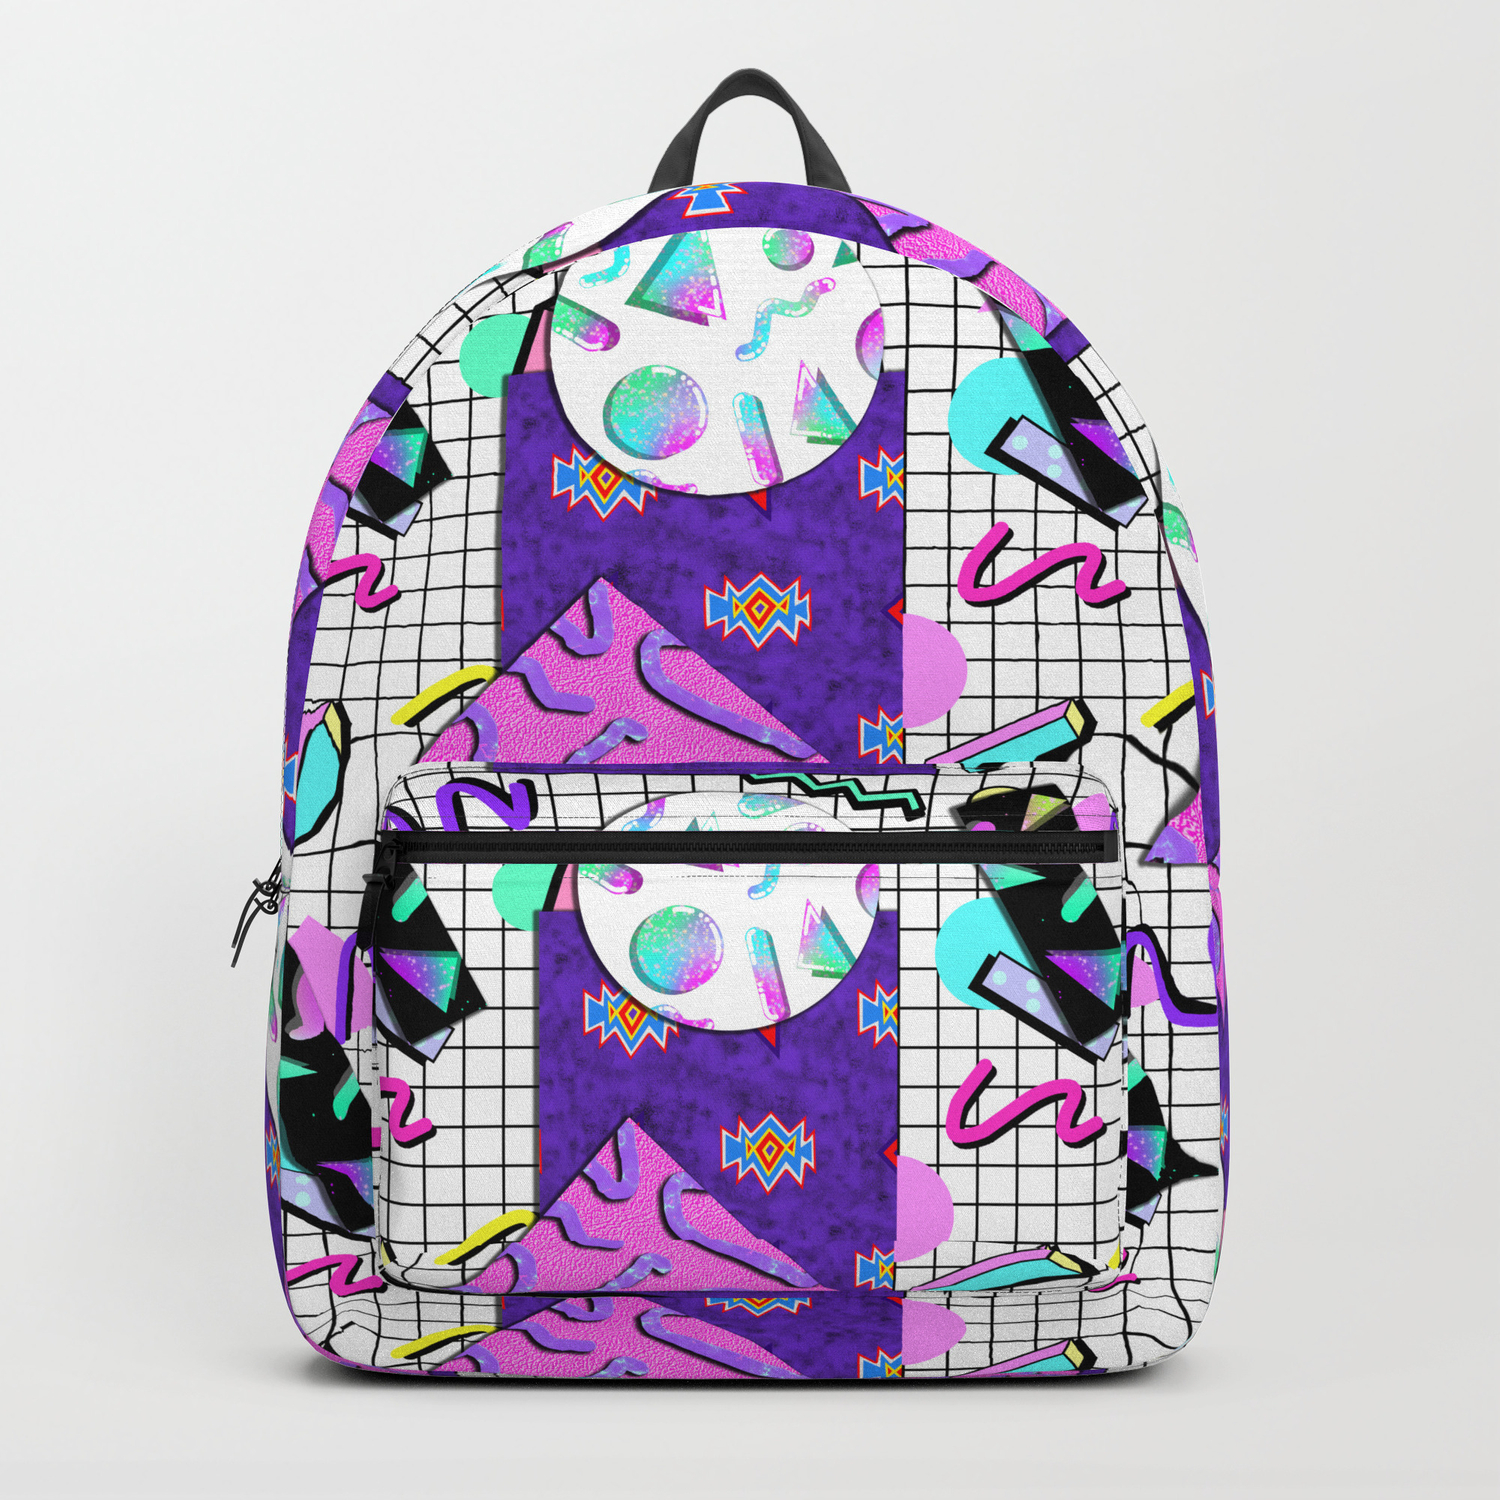 Trapper Keeper 80s Crazy Grid Design Backpack by melisssne